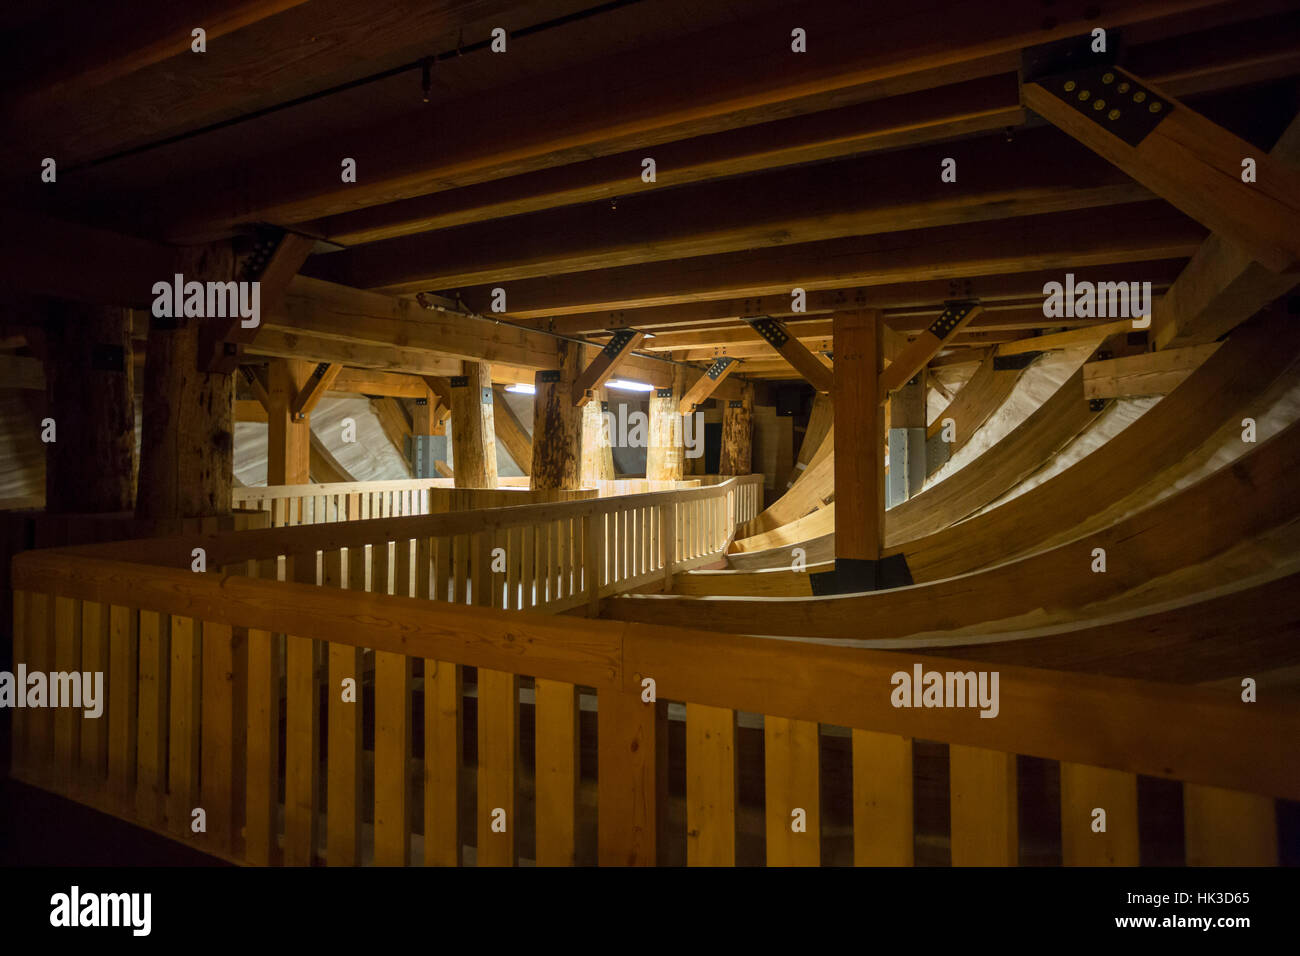 Williamstown, Kentucky - Interior timber framing of the ark at the Ark Encounter, built by a fundamentalist Christian - Stock Image